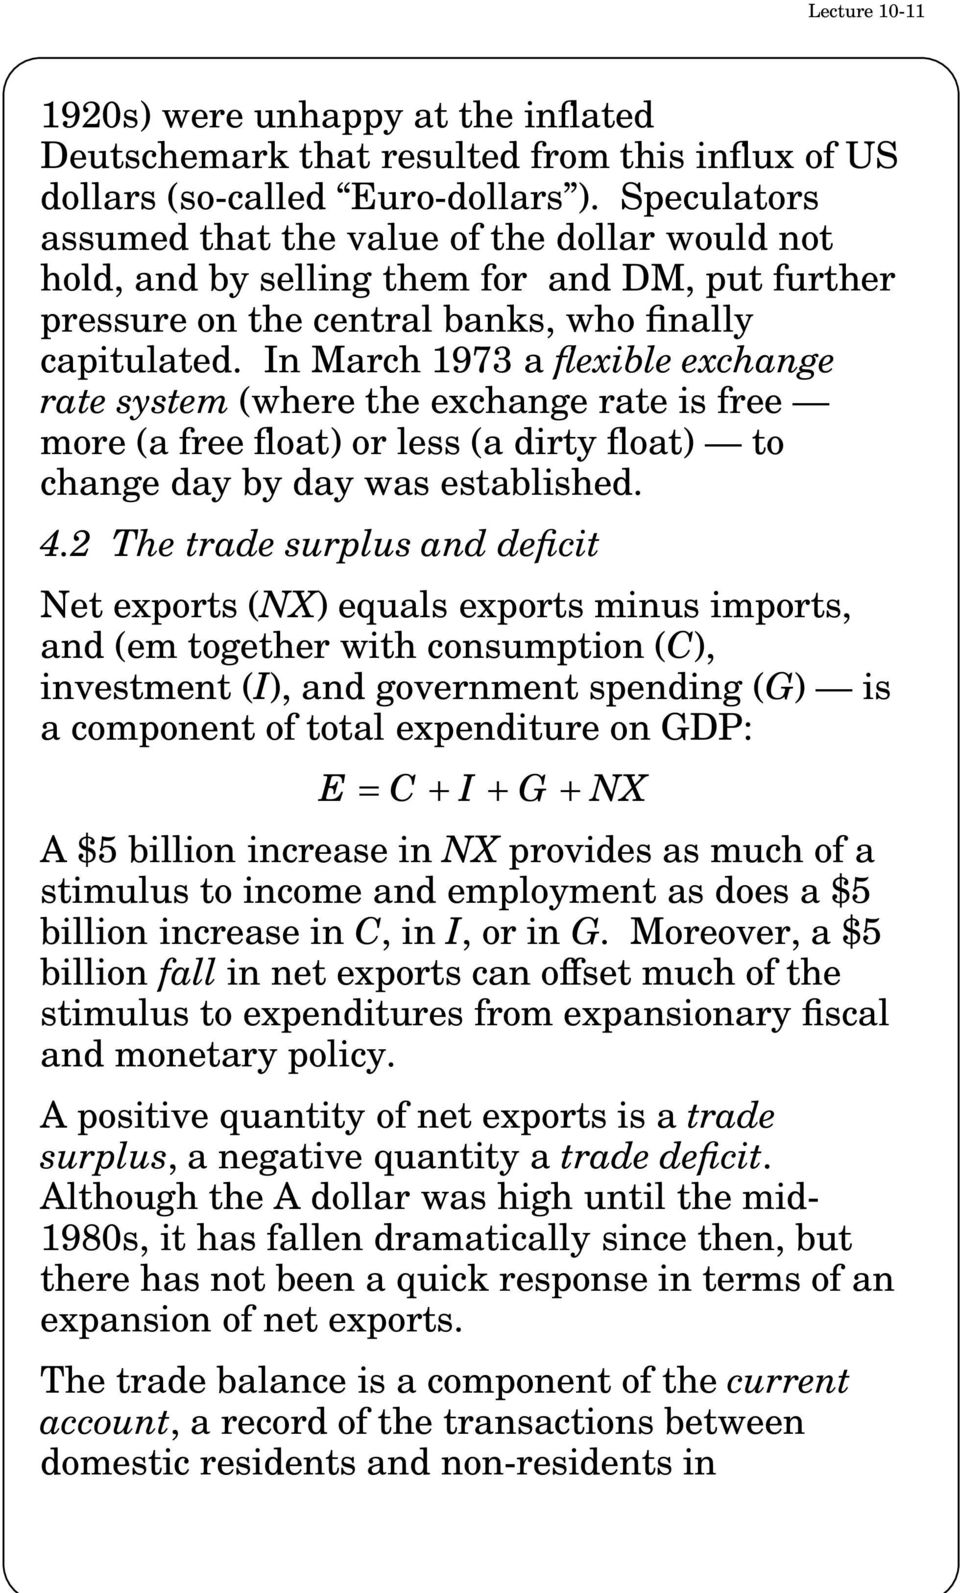 In March 1973 a flexible exchange rate system (where the exchange rate is free more (a free float) or less (a dirty float) to change day by day was established. 4.